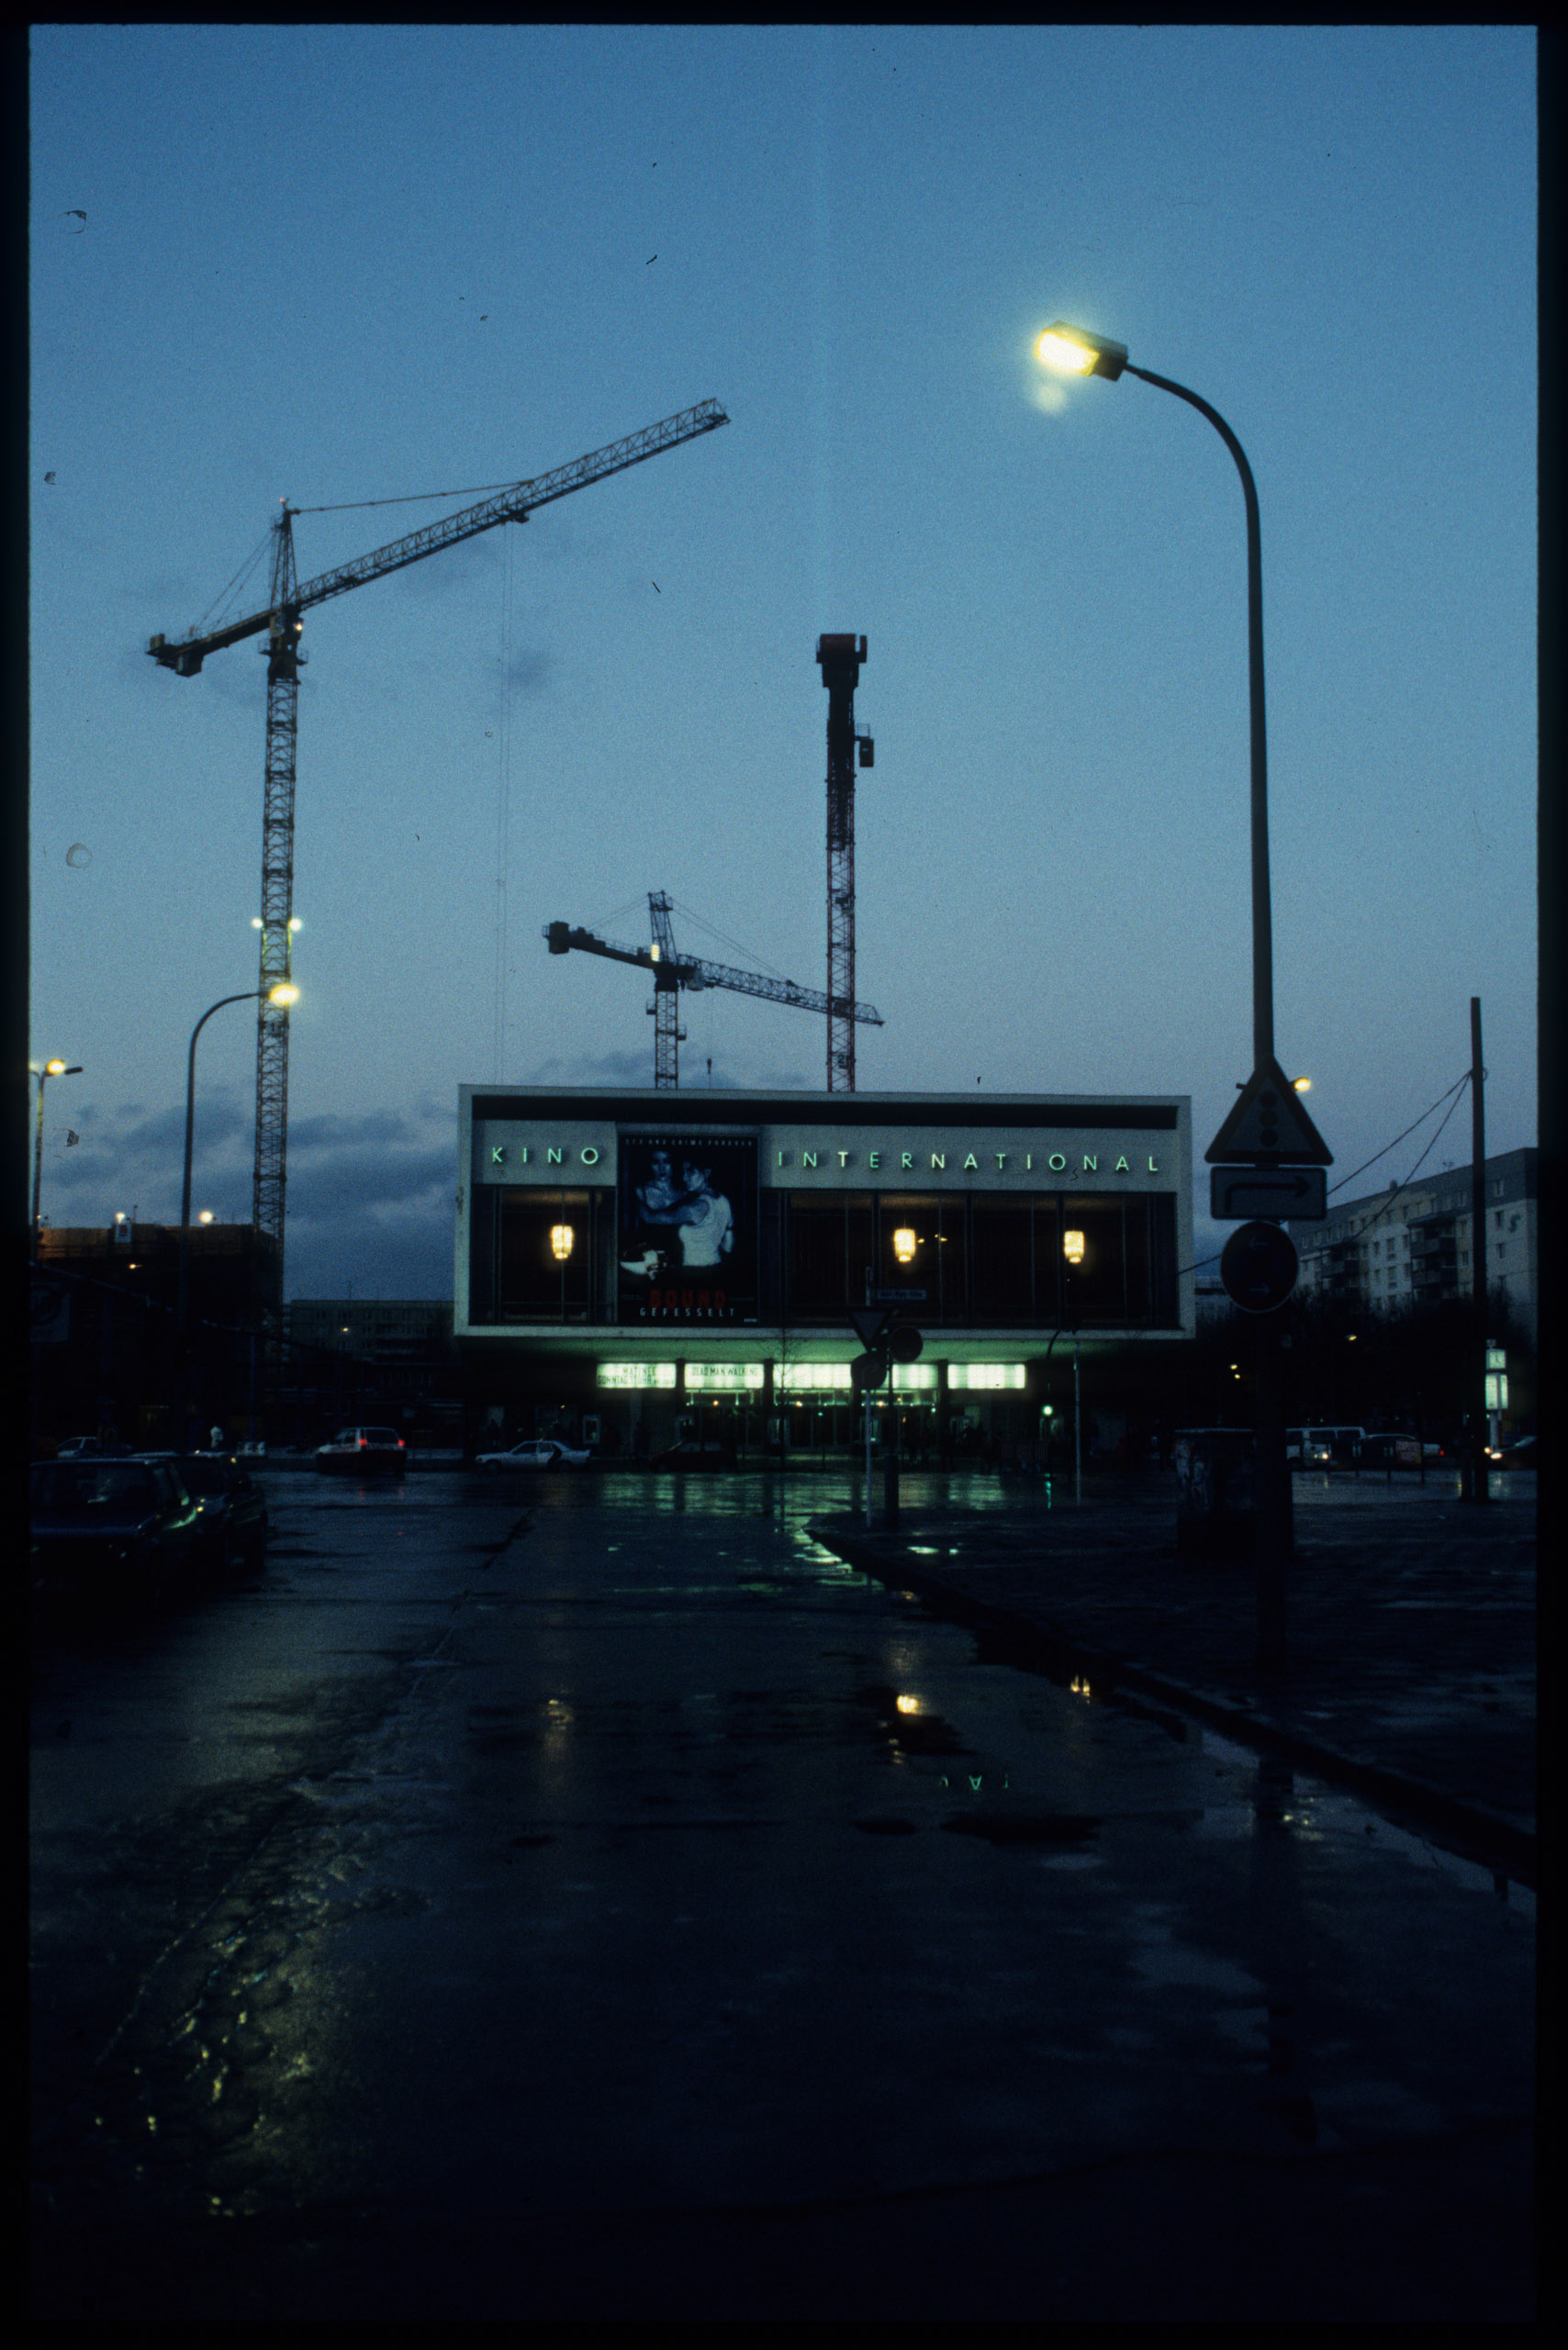 Color photo: panorama of the cinema with silhouettes of constructions cranes in the background